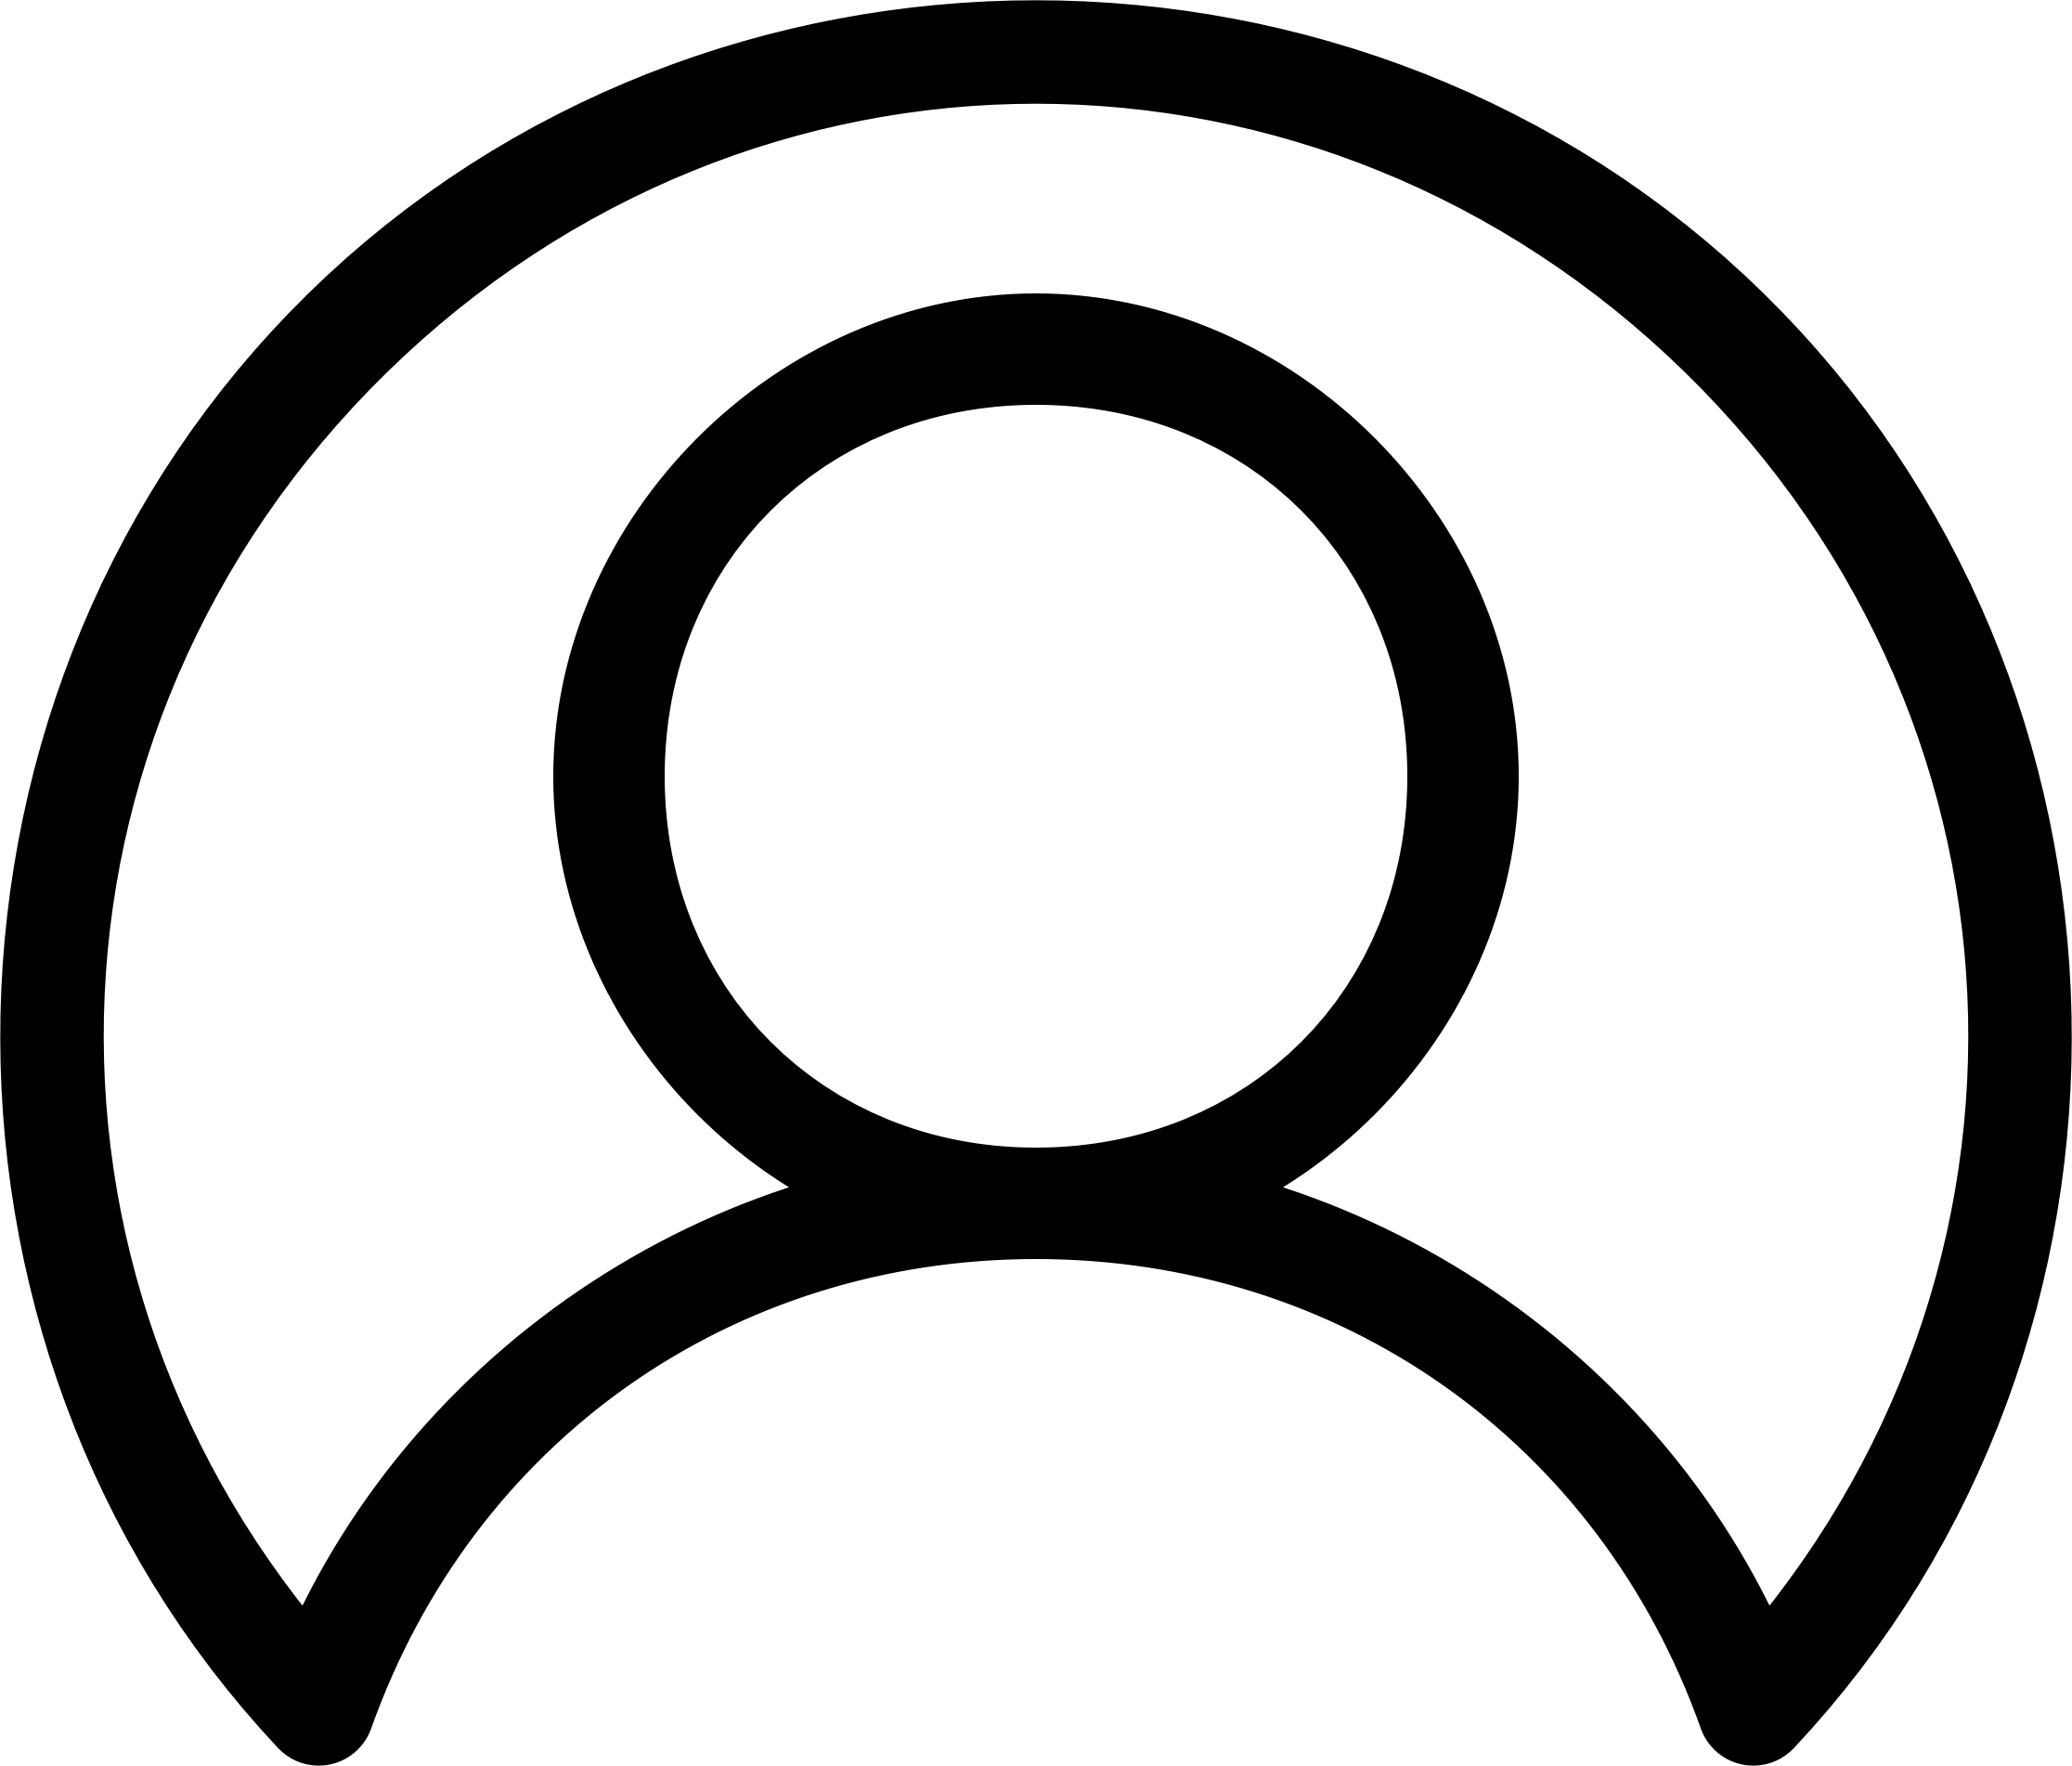 Thin Line User Icon - User PNG Icon